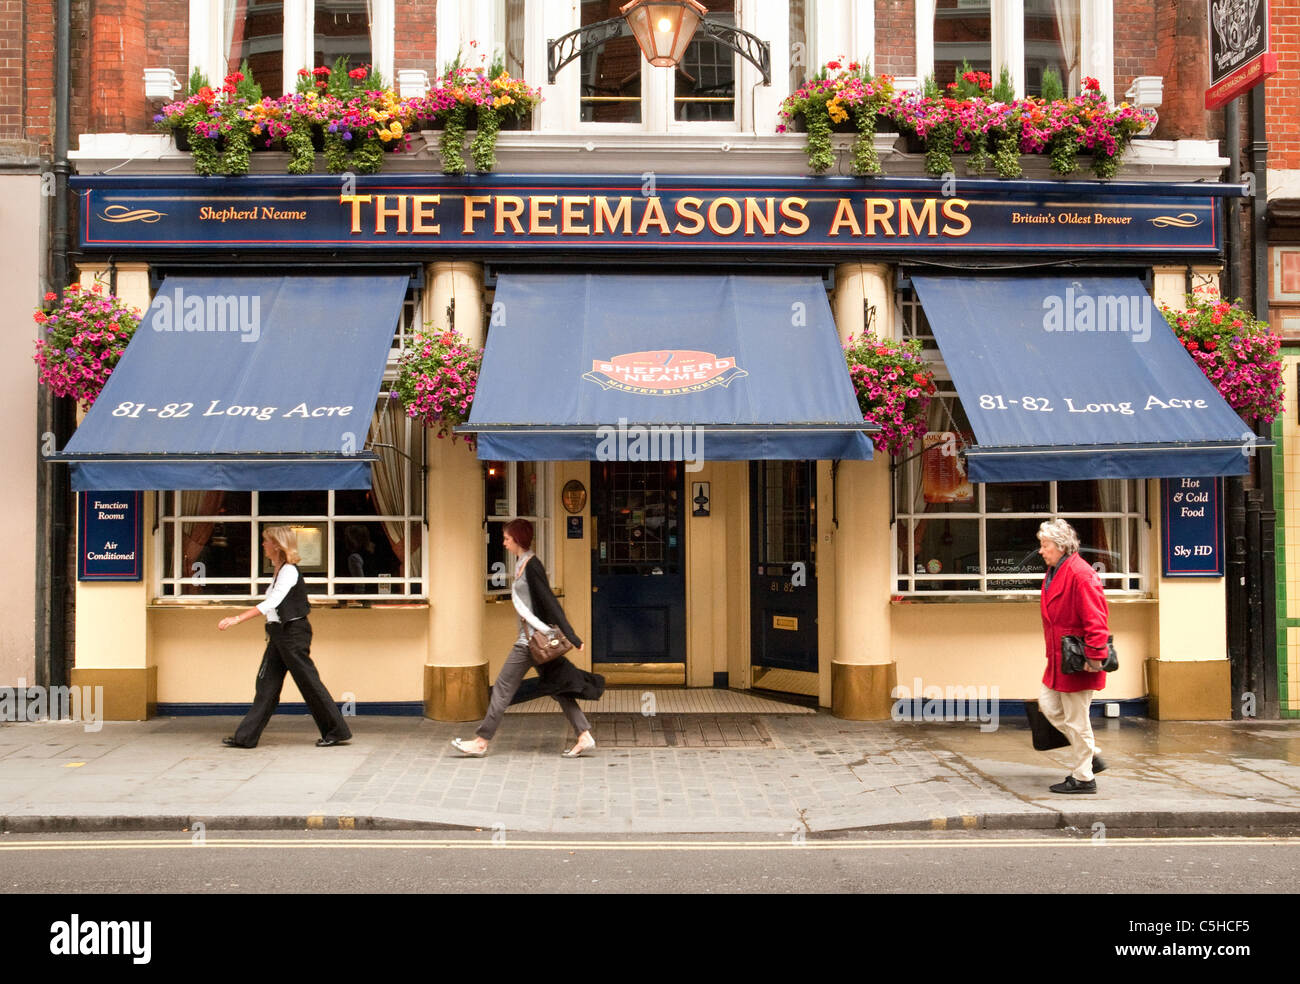 The Freemasons Arms, a Shepherd Neame pub in Covent Garden, London UK - Stock Image